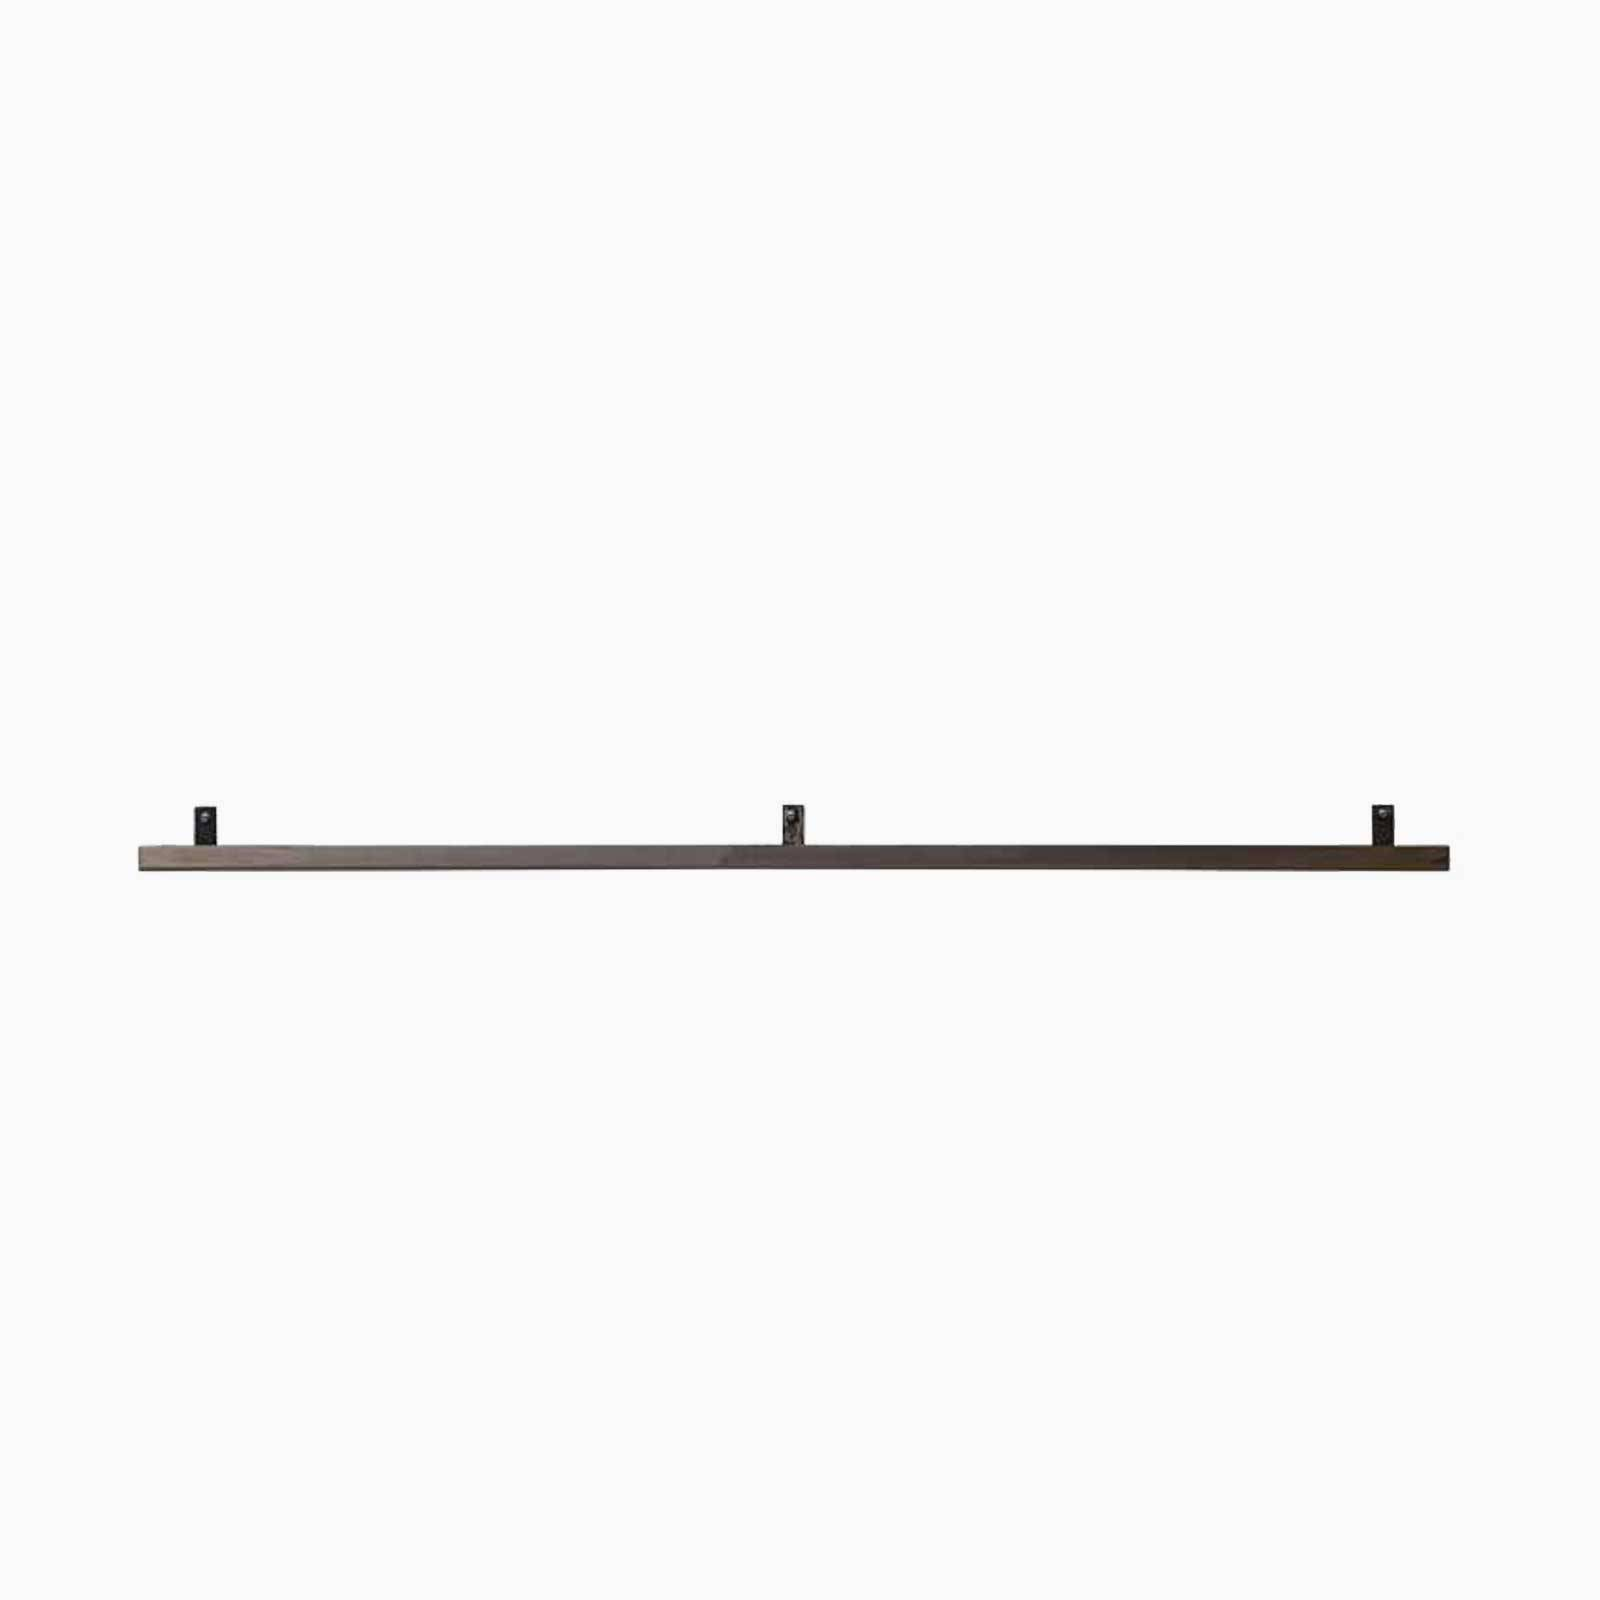 Long Metal Book Shelf Rail 120cm thumbnails